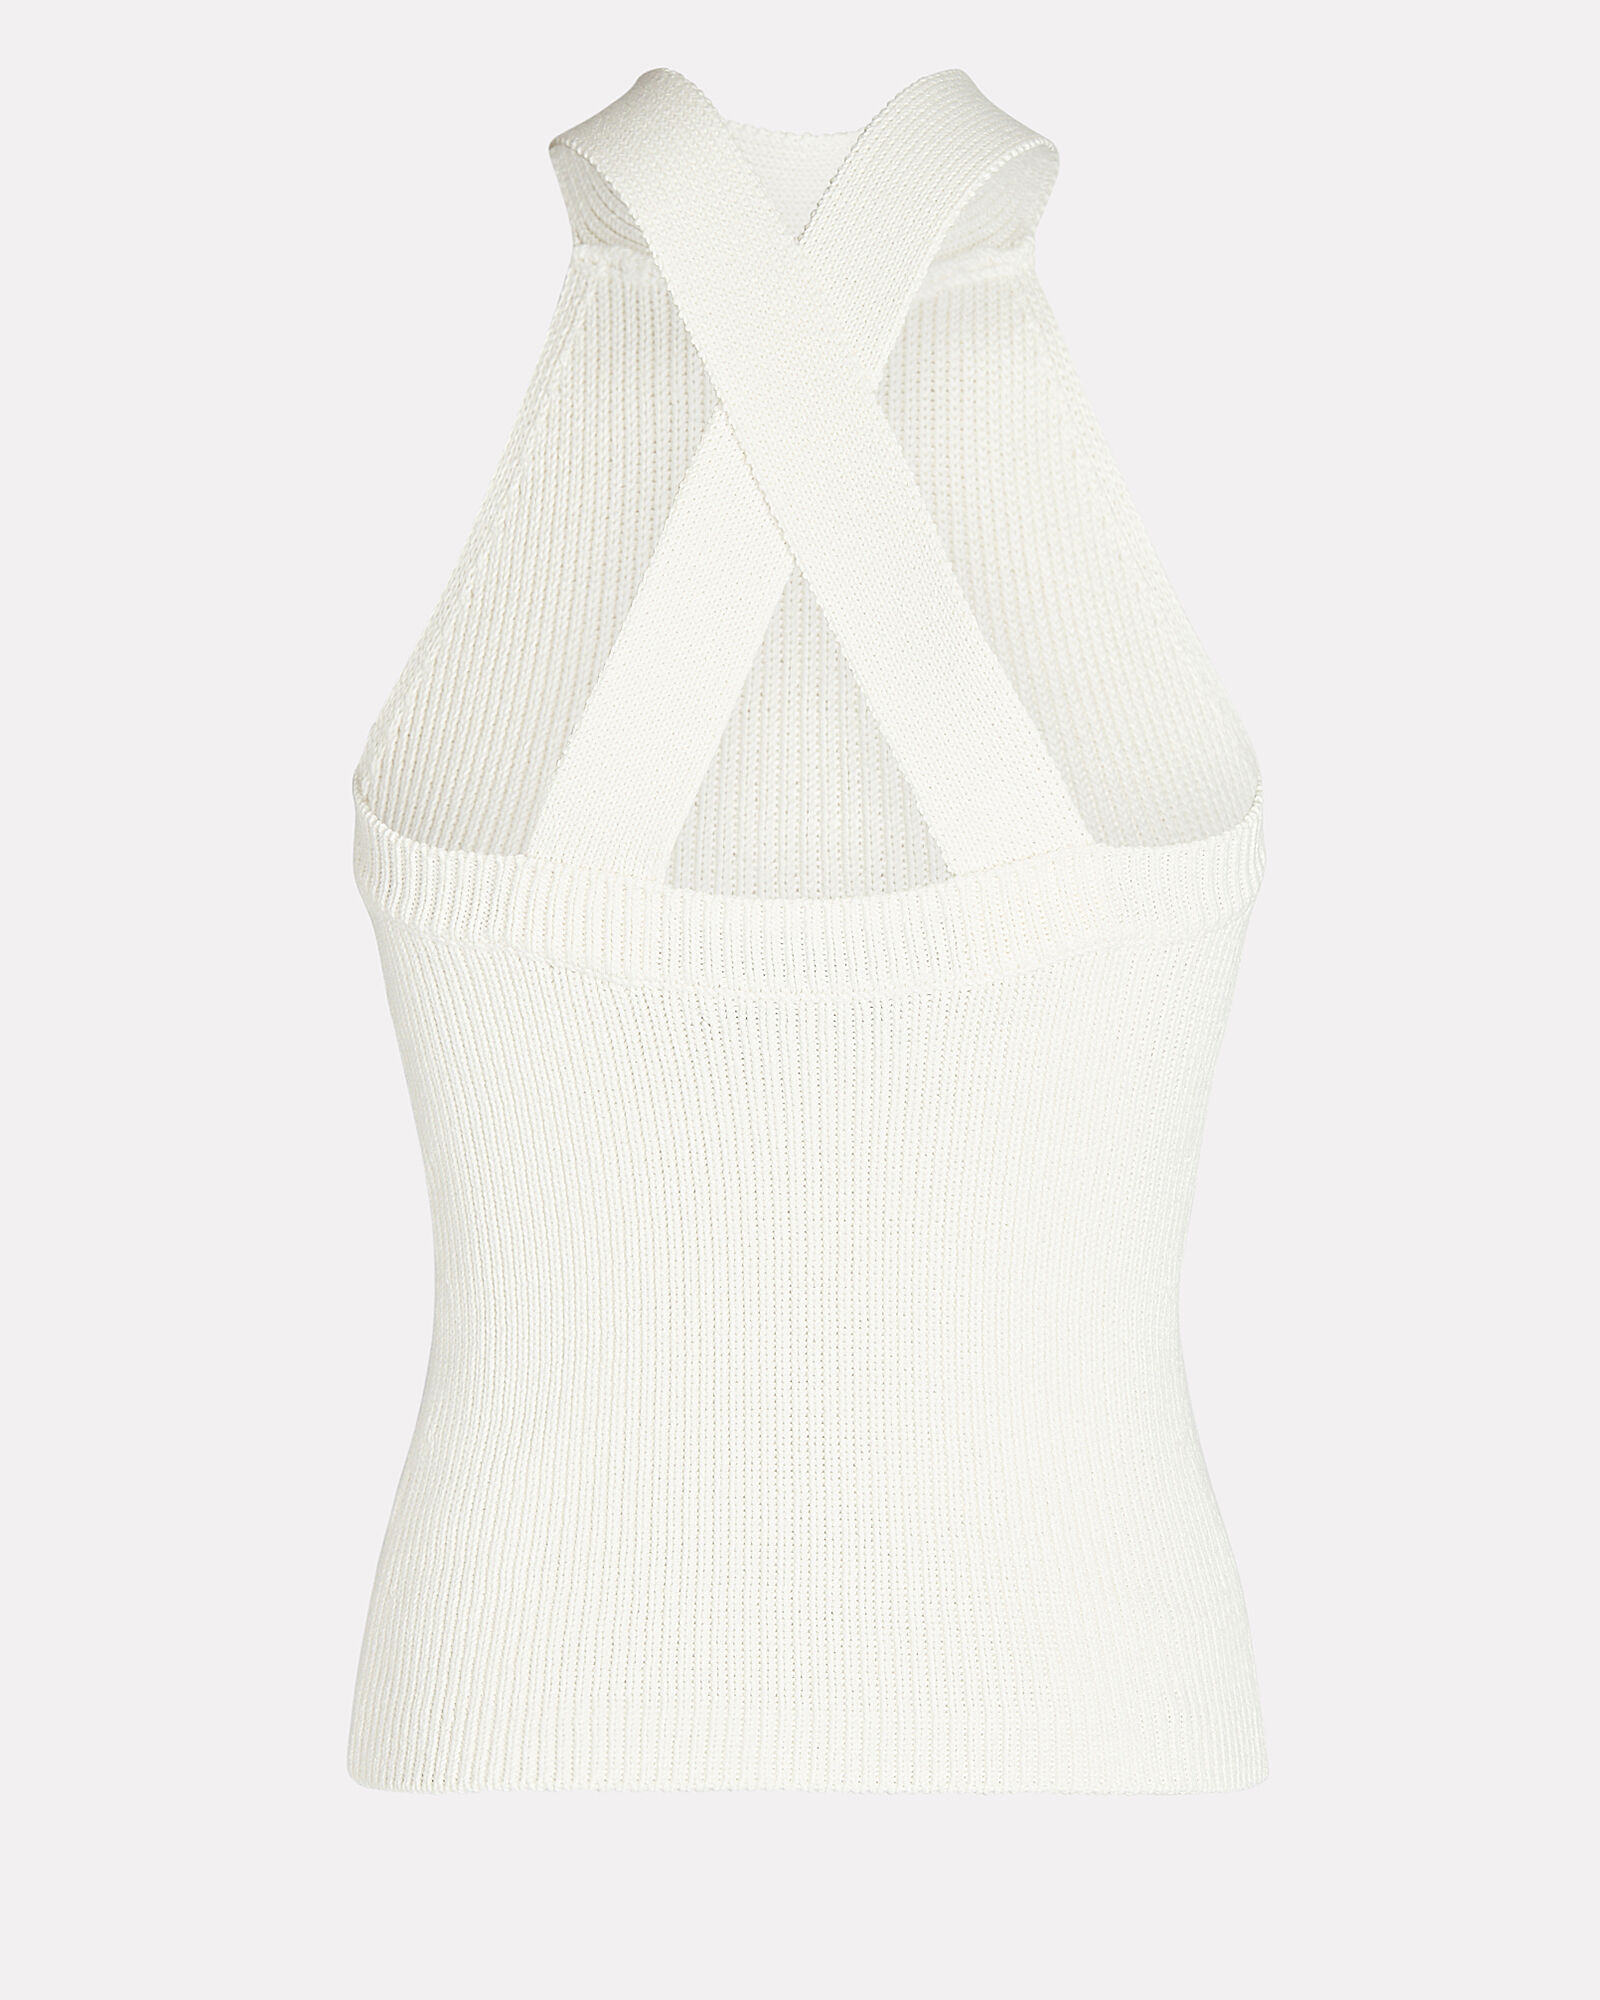 Dylan Sleeveless Knit Top, IVORY, hi-res